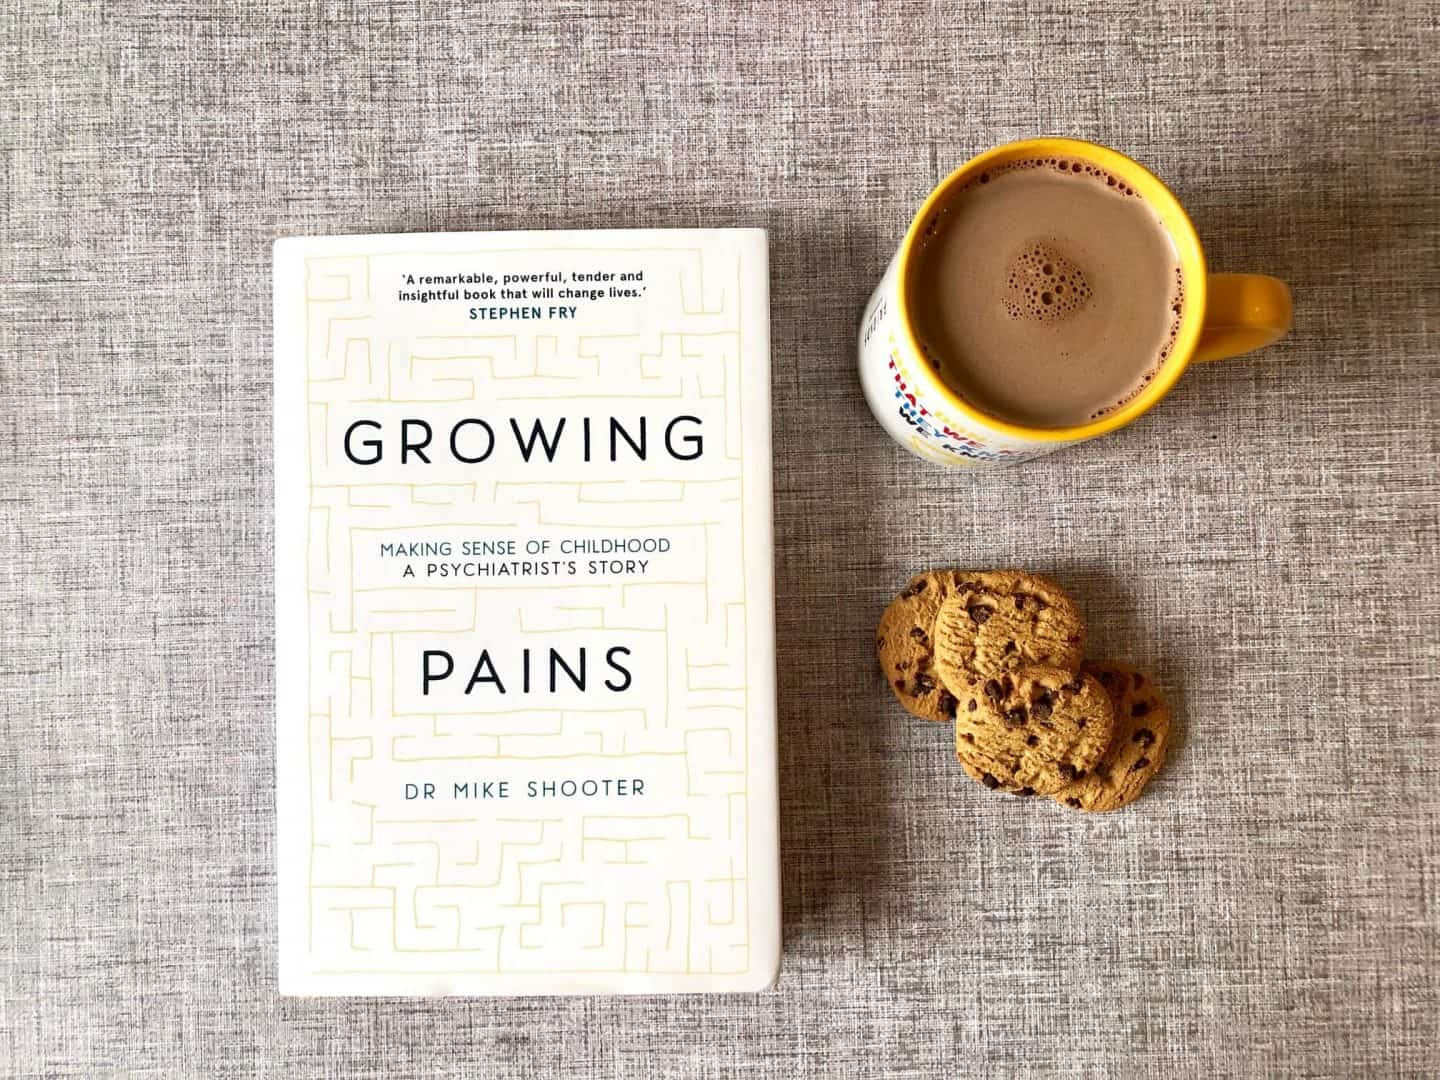 Growing Pains by Dr Mark Shooter